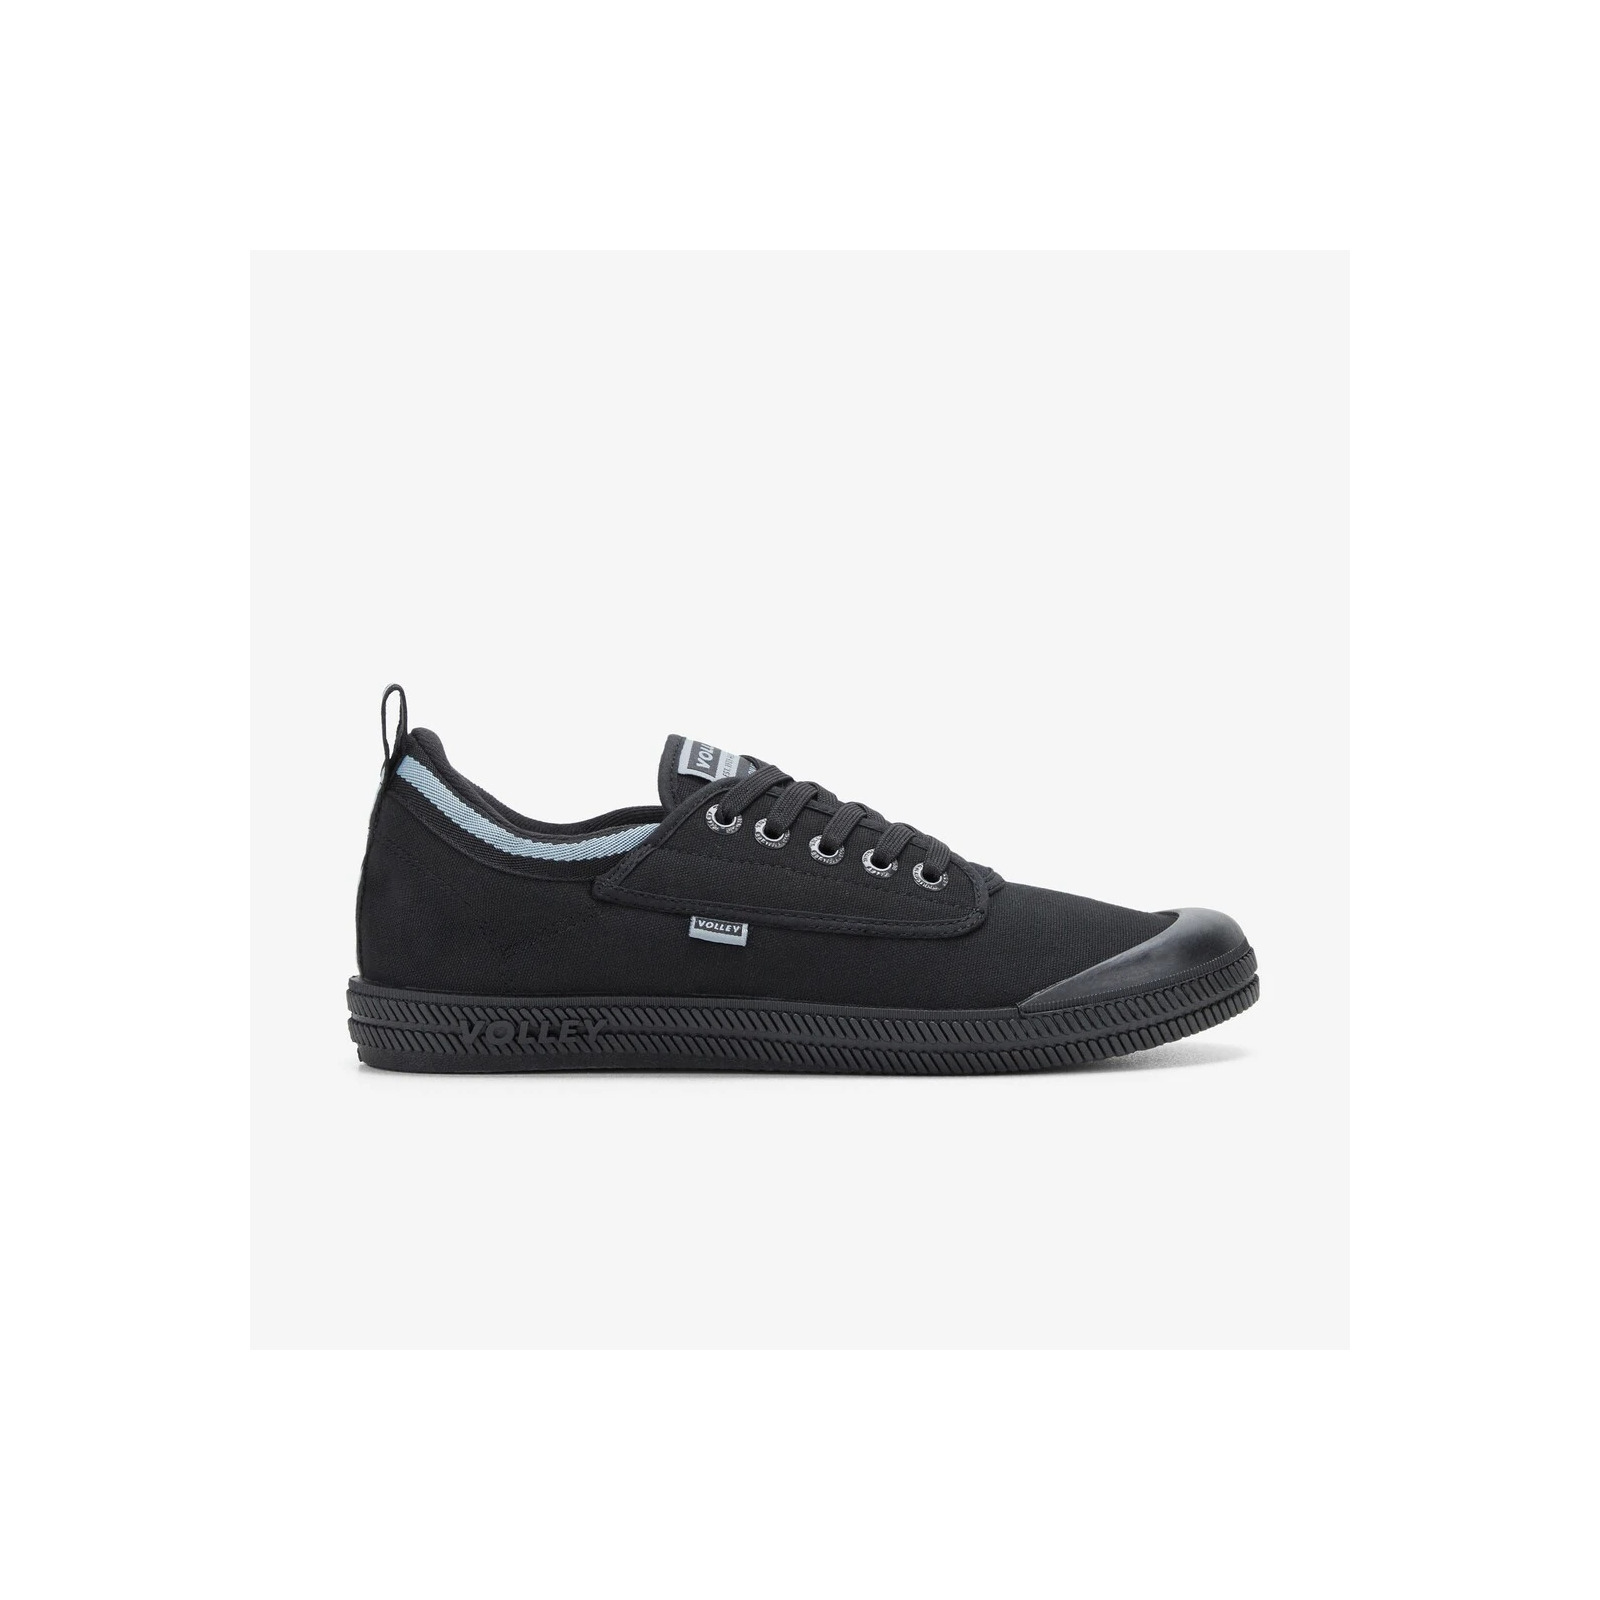 VOLLEY INTERNATIONAL LOW SHOES BLACK/DARK GREY